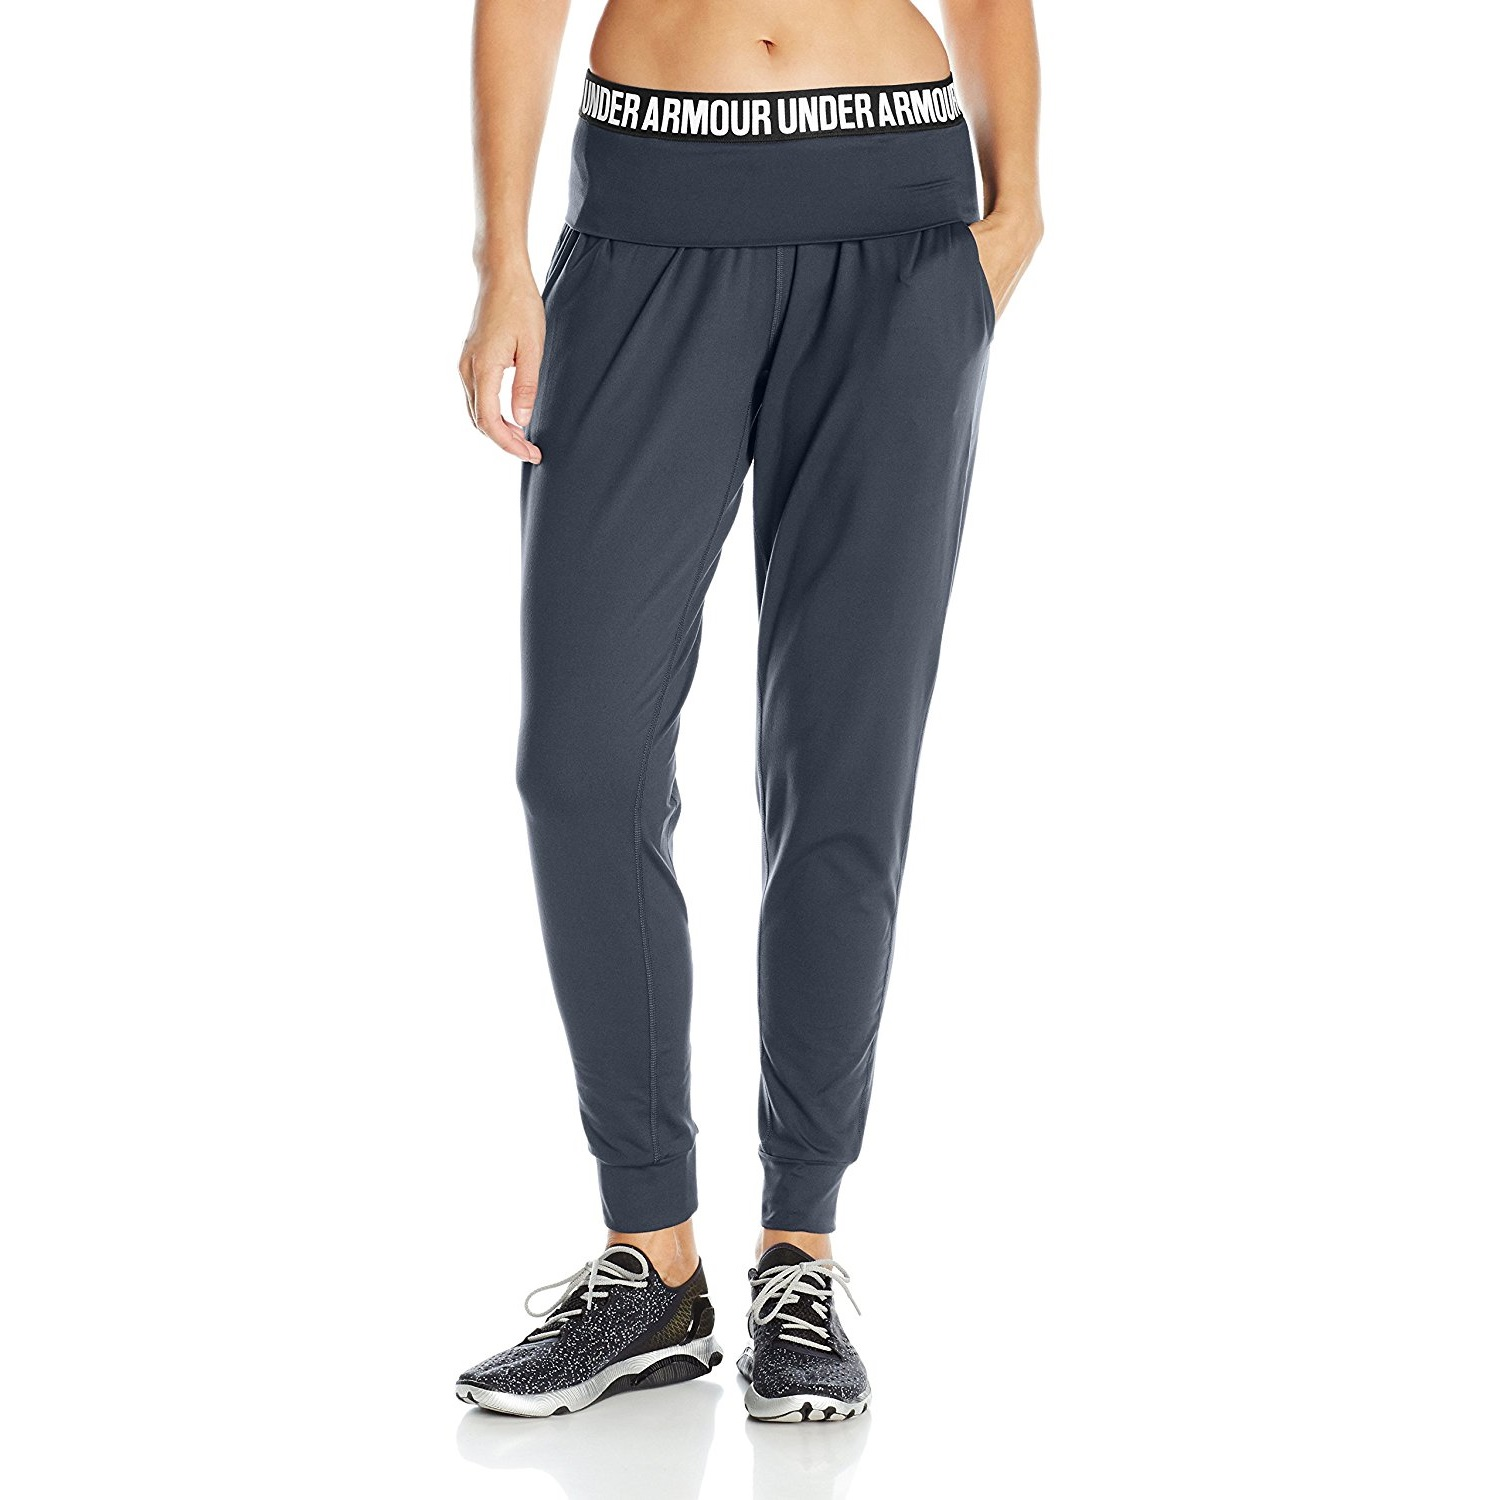 baf1764c20 under armour womens downtown knit yoga pant anthracite/tonal